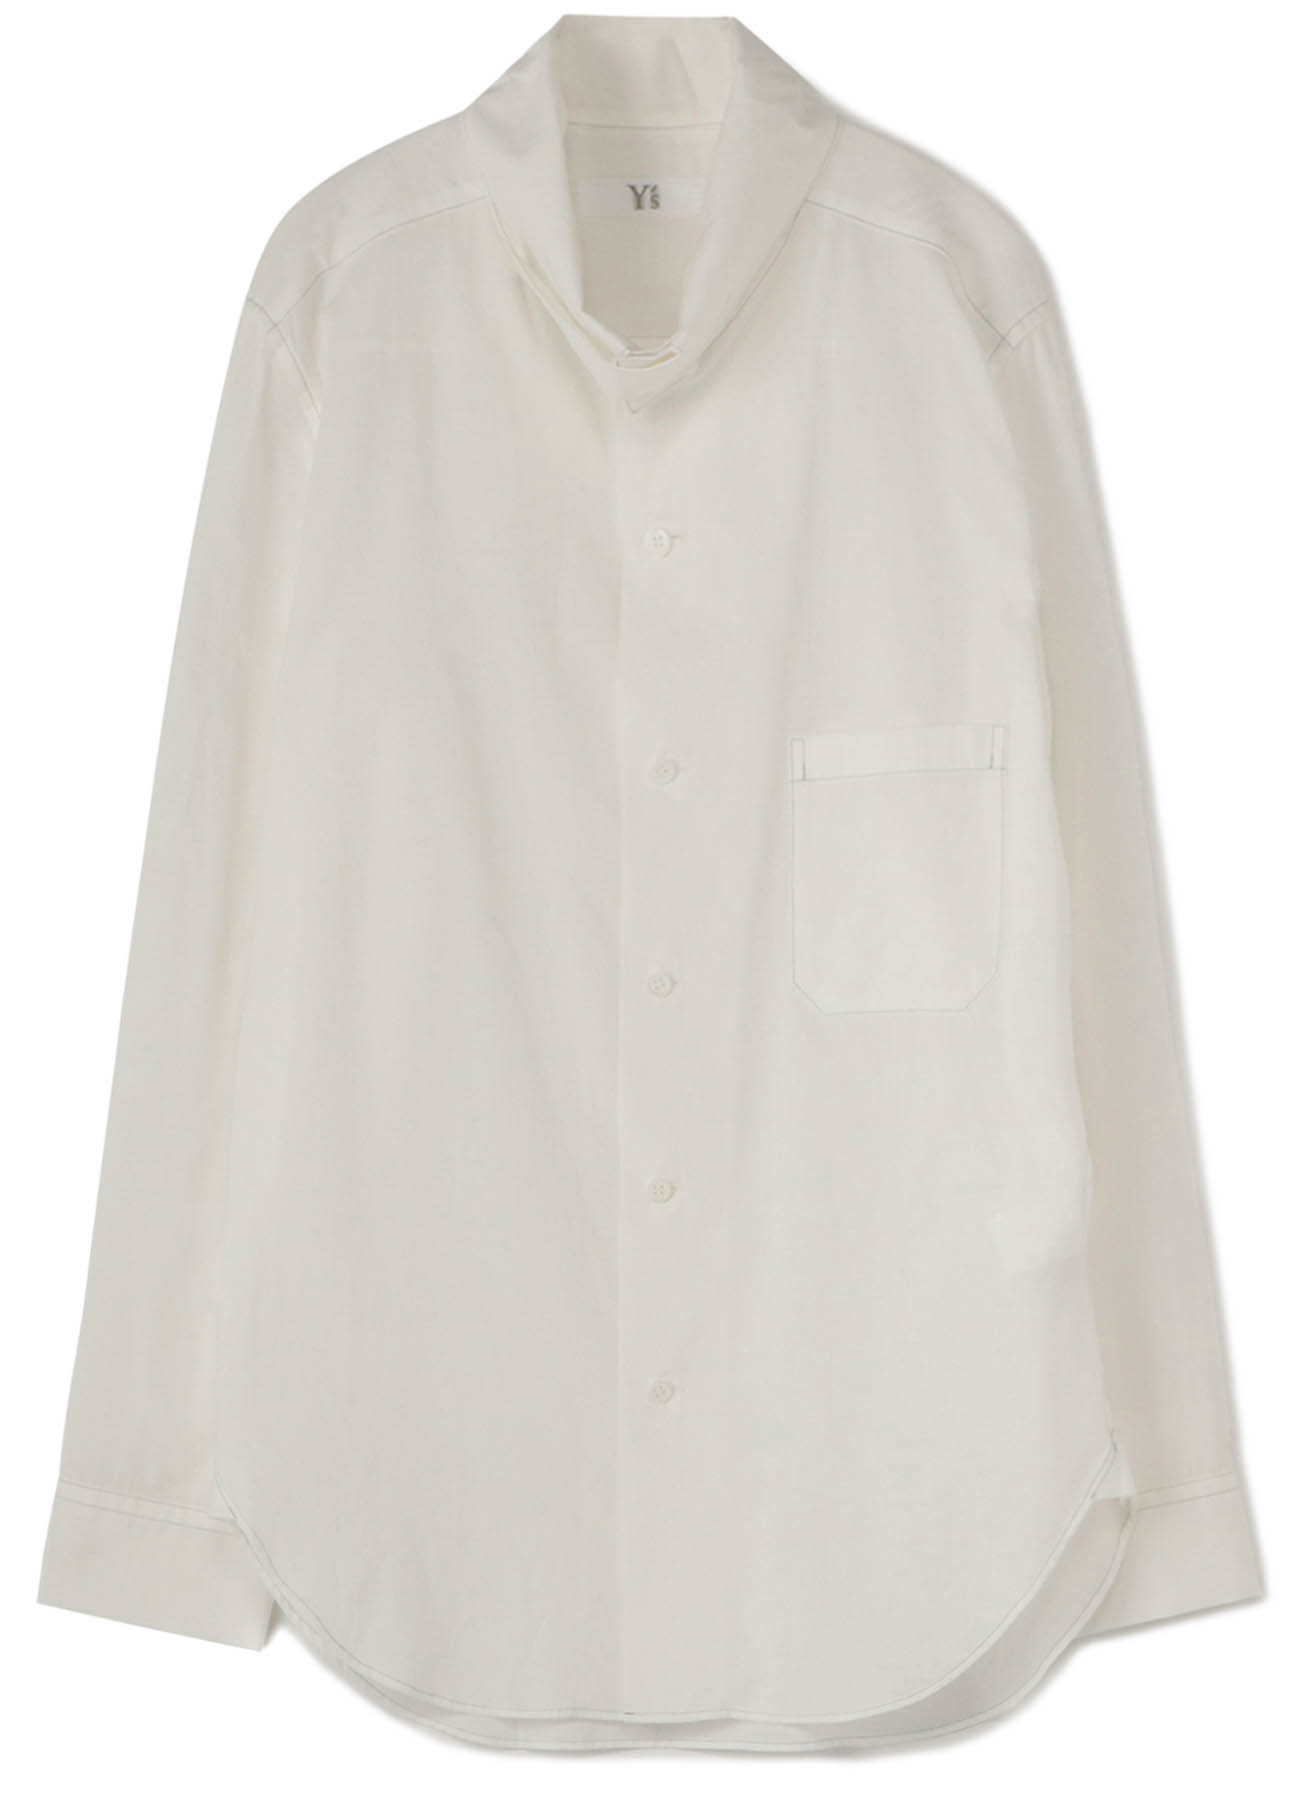 POWDER SNOW WASHER CUTTING OUT COLLAR BLOUSE